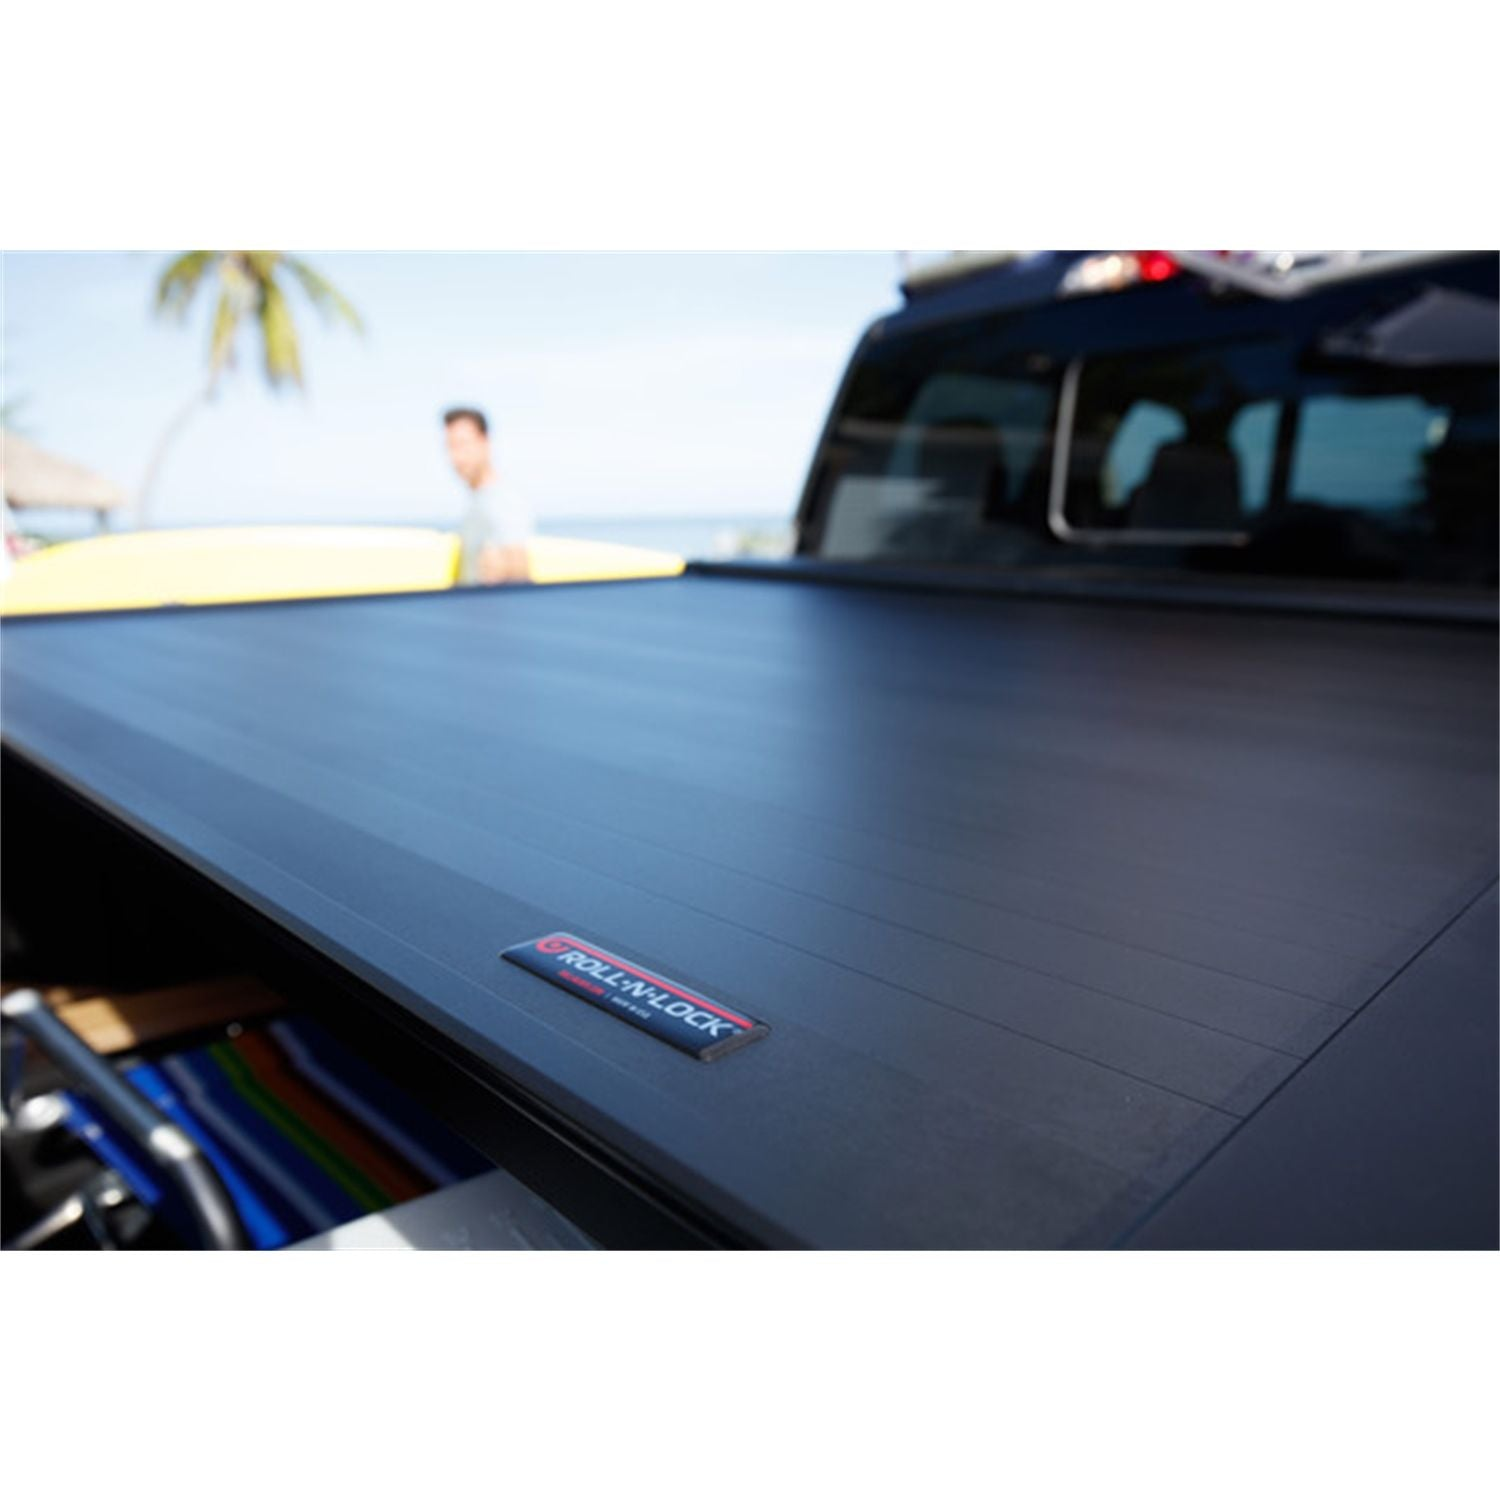 Roll-N-Lock RC570E Locking Retractable E-Series Truck Bed Tonneau Cover for 2007-2020 Toyota Tundra CrewMax | Fits 5.5 Ft. Bed